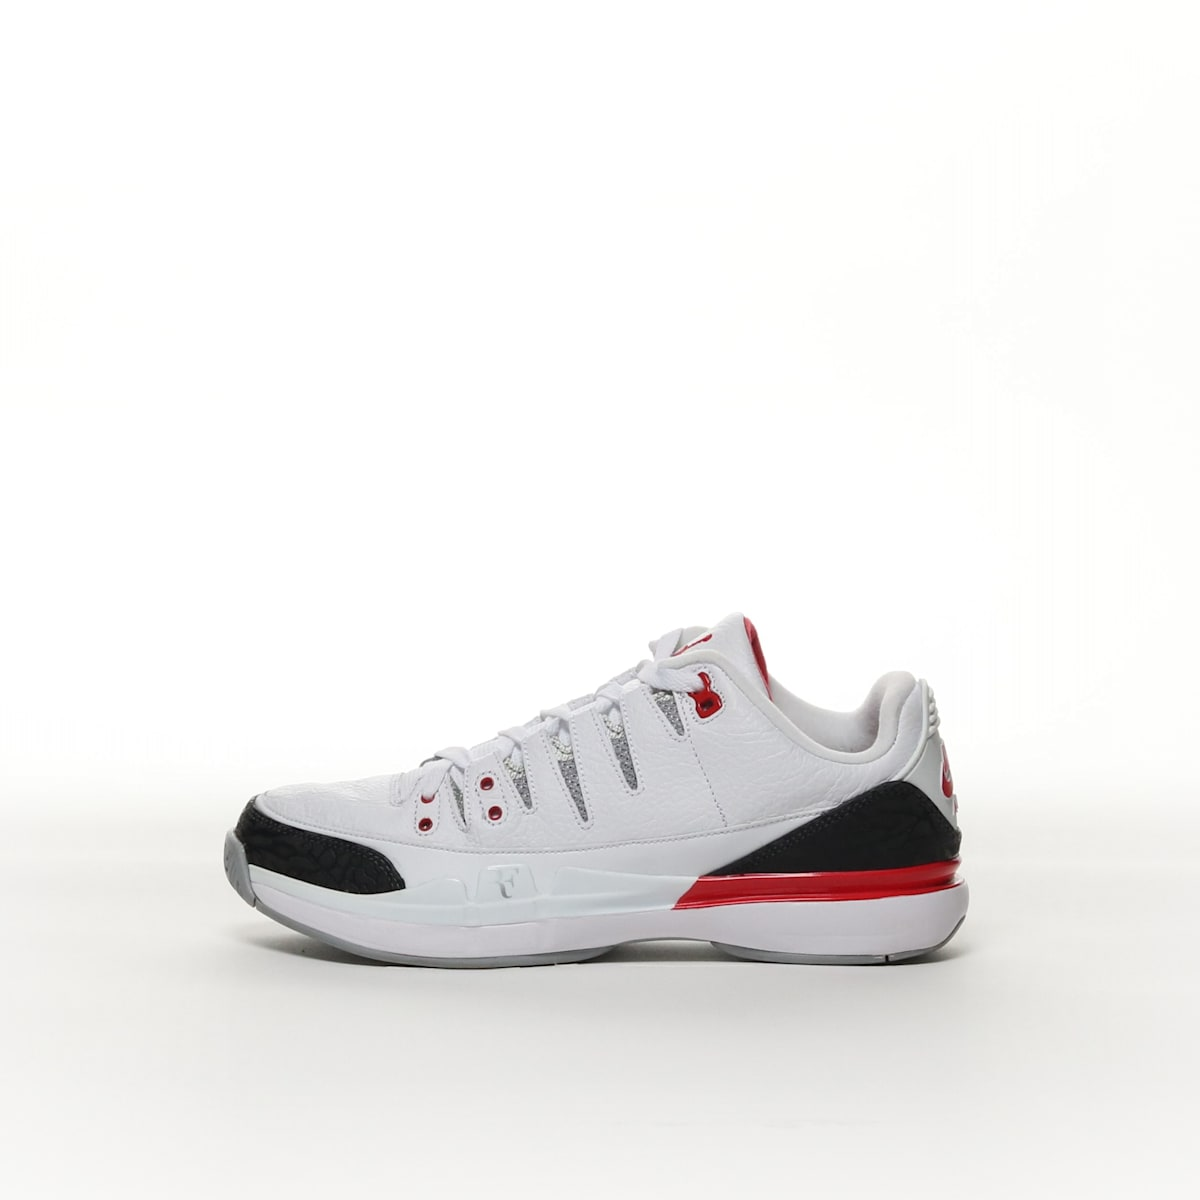 the best attitude b51a7 3dab0 Nike Zoom Vapor AJ3 - WHITE/SILVER/BLACK/FIRE RED